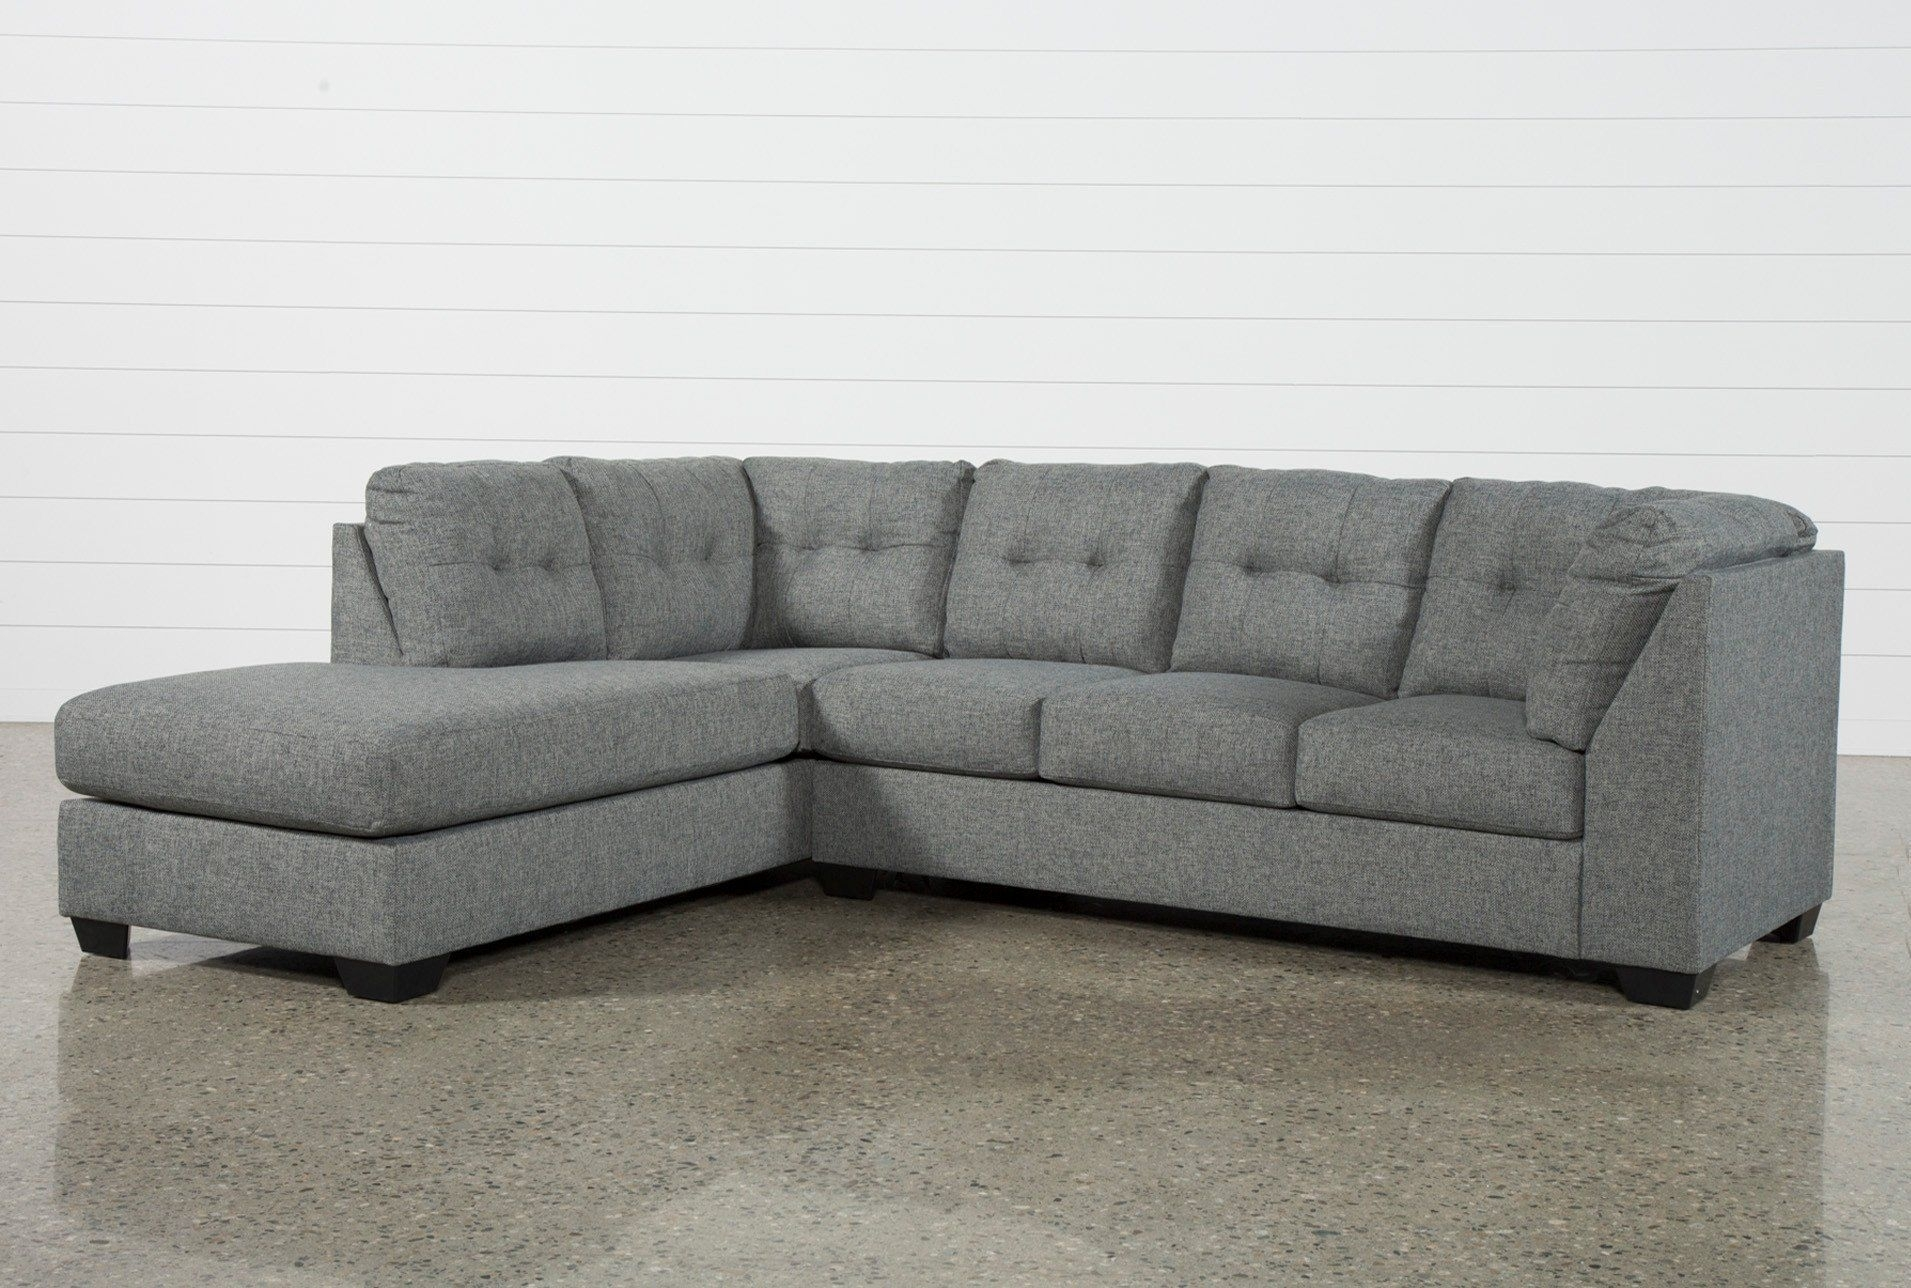 Cosmos Grey 2 Piece Sectional W/laf Chaise | Quilling | Pinterest Regarding Cosmos Grey 2 Piece Sectionals With Raf Chaise (View 5 of 25)